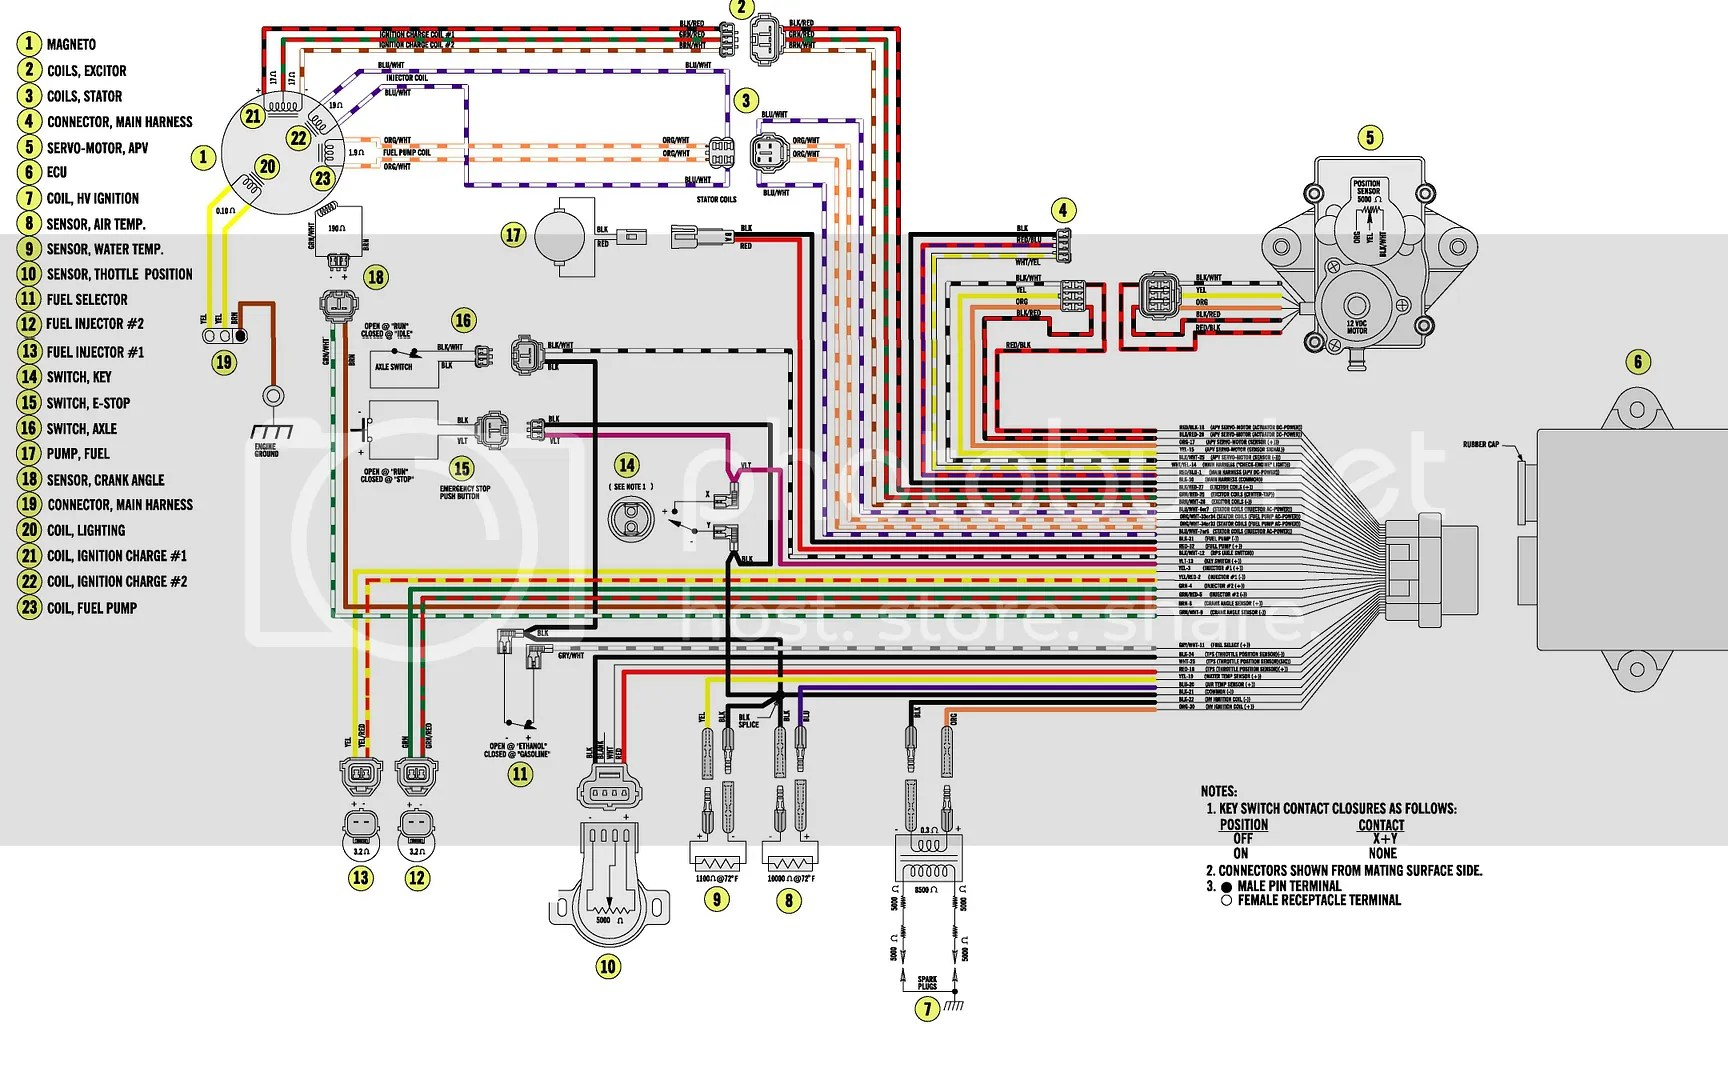 hight resolution of cat 6a wiring diagram free download schematic wiring diagram third caterpillar alternator wiring diagram cat wiring